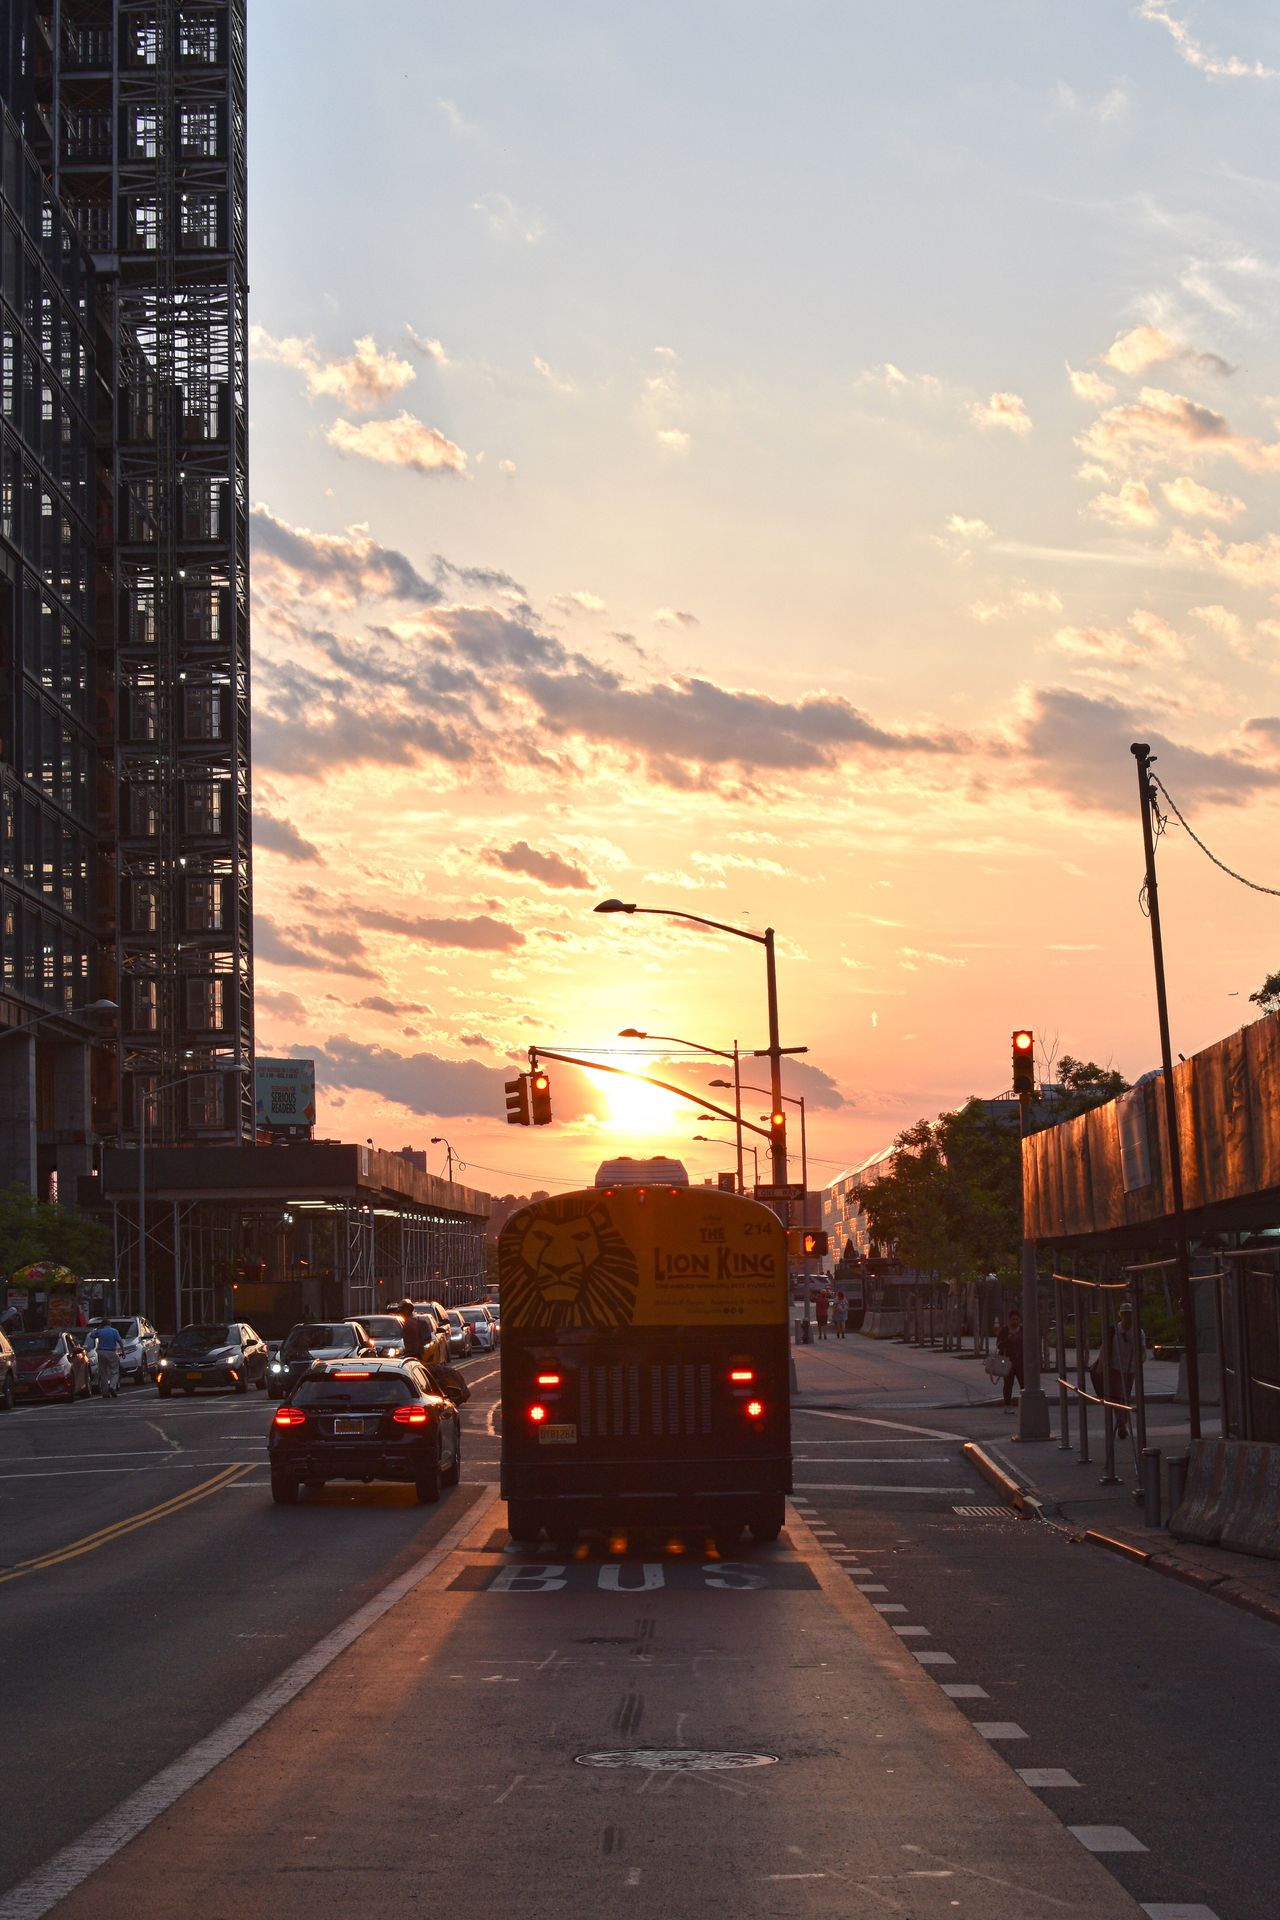 Sunset Transportation Sky Architecture Built Structure Land Vehicle Mode Of Transport Cloud - Sky Building Exterior Road Car City Outdoors No People Fire Engine Day Lion King Bus NYC NYC Street NYC Street Photography Sunset Silhouettes Silhouette_collection Silhouette NYC Photography Silhouettes